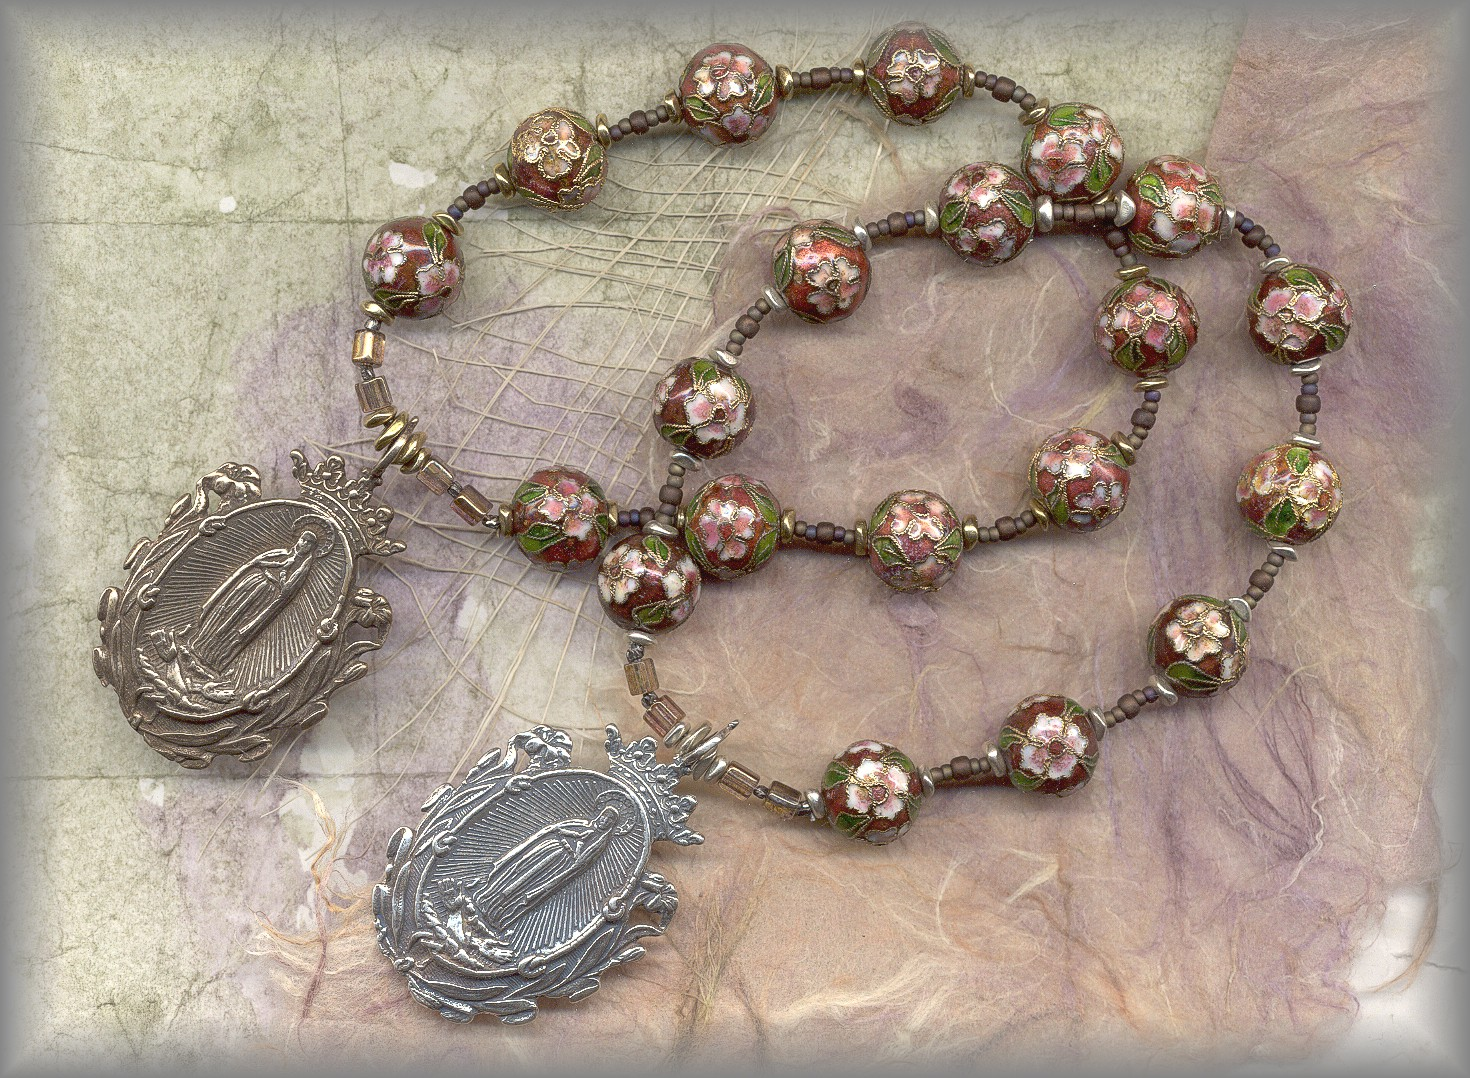 CHAPLETS: full view of Miraculous Medal chaplets